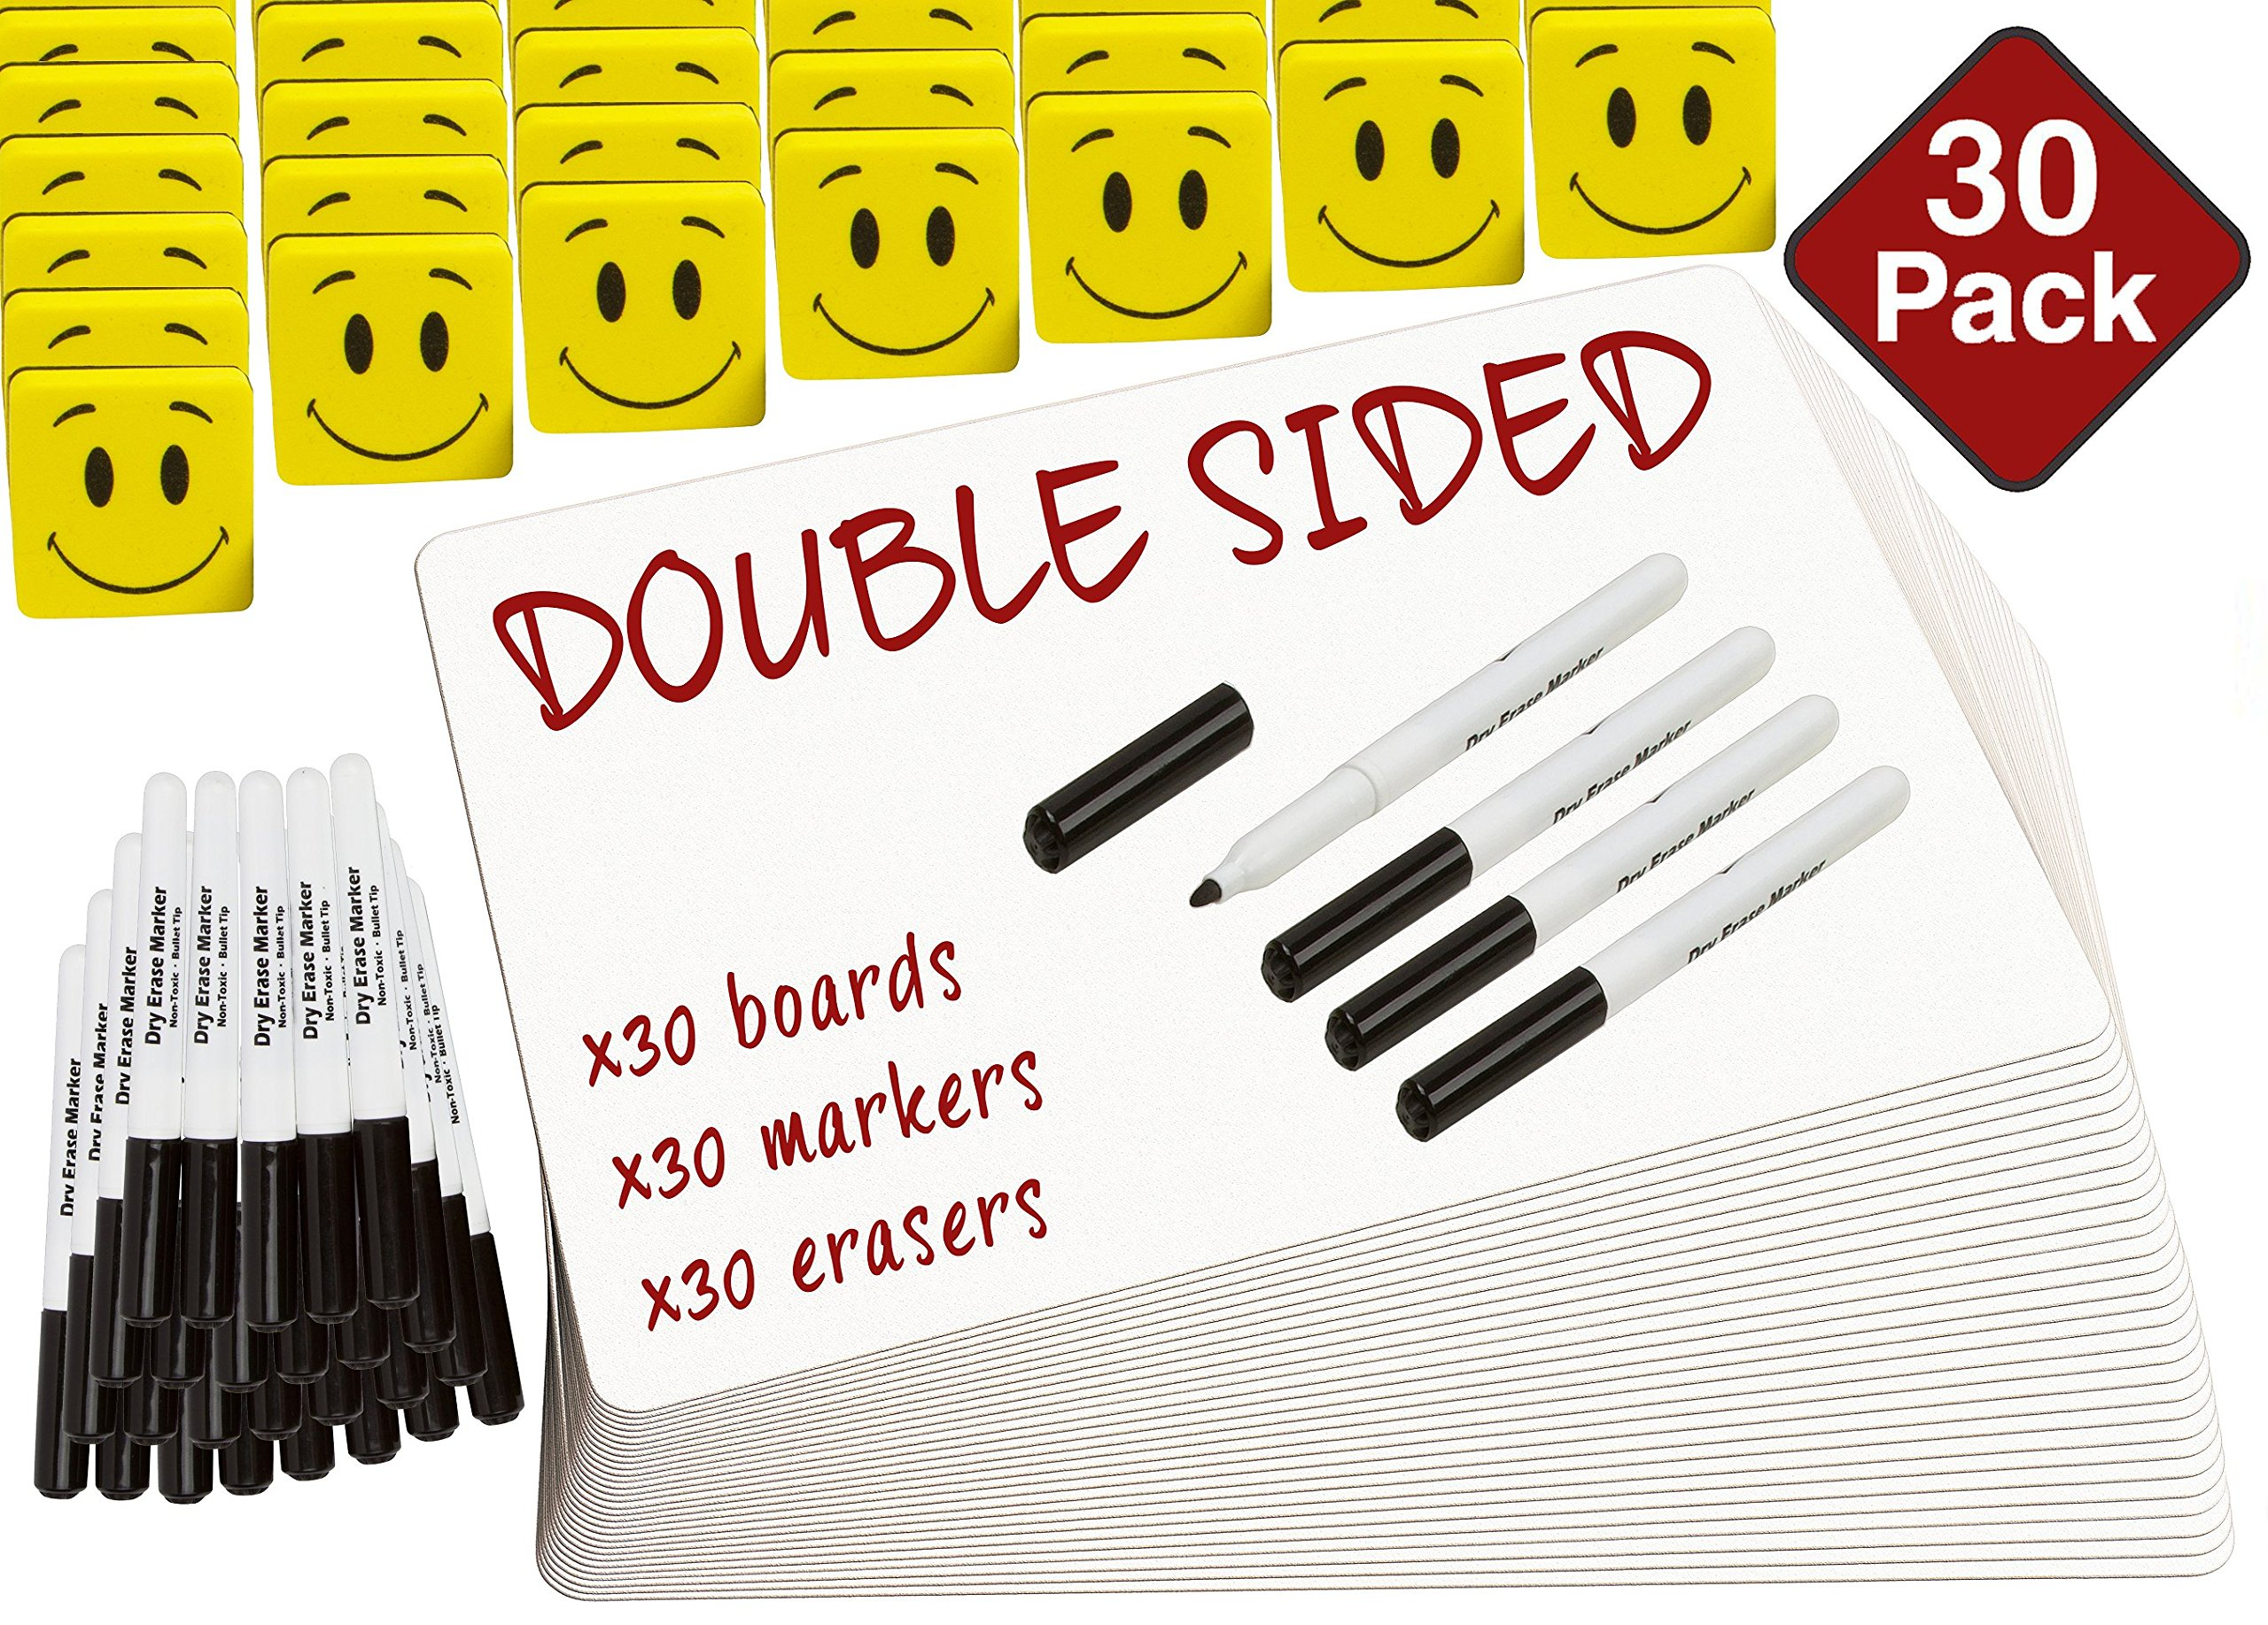 "DOUBLE SIDED Dry Erase Lapboards Pack Bulk Includes 30 Pcs 9 x 12"" Inch Mini Small Whiteboards With Erasers and Markers For School Students Write Large Classroom Drawing Interactive Office Supplies"